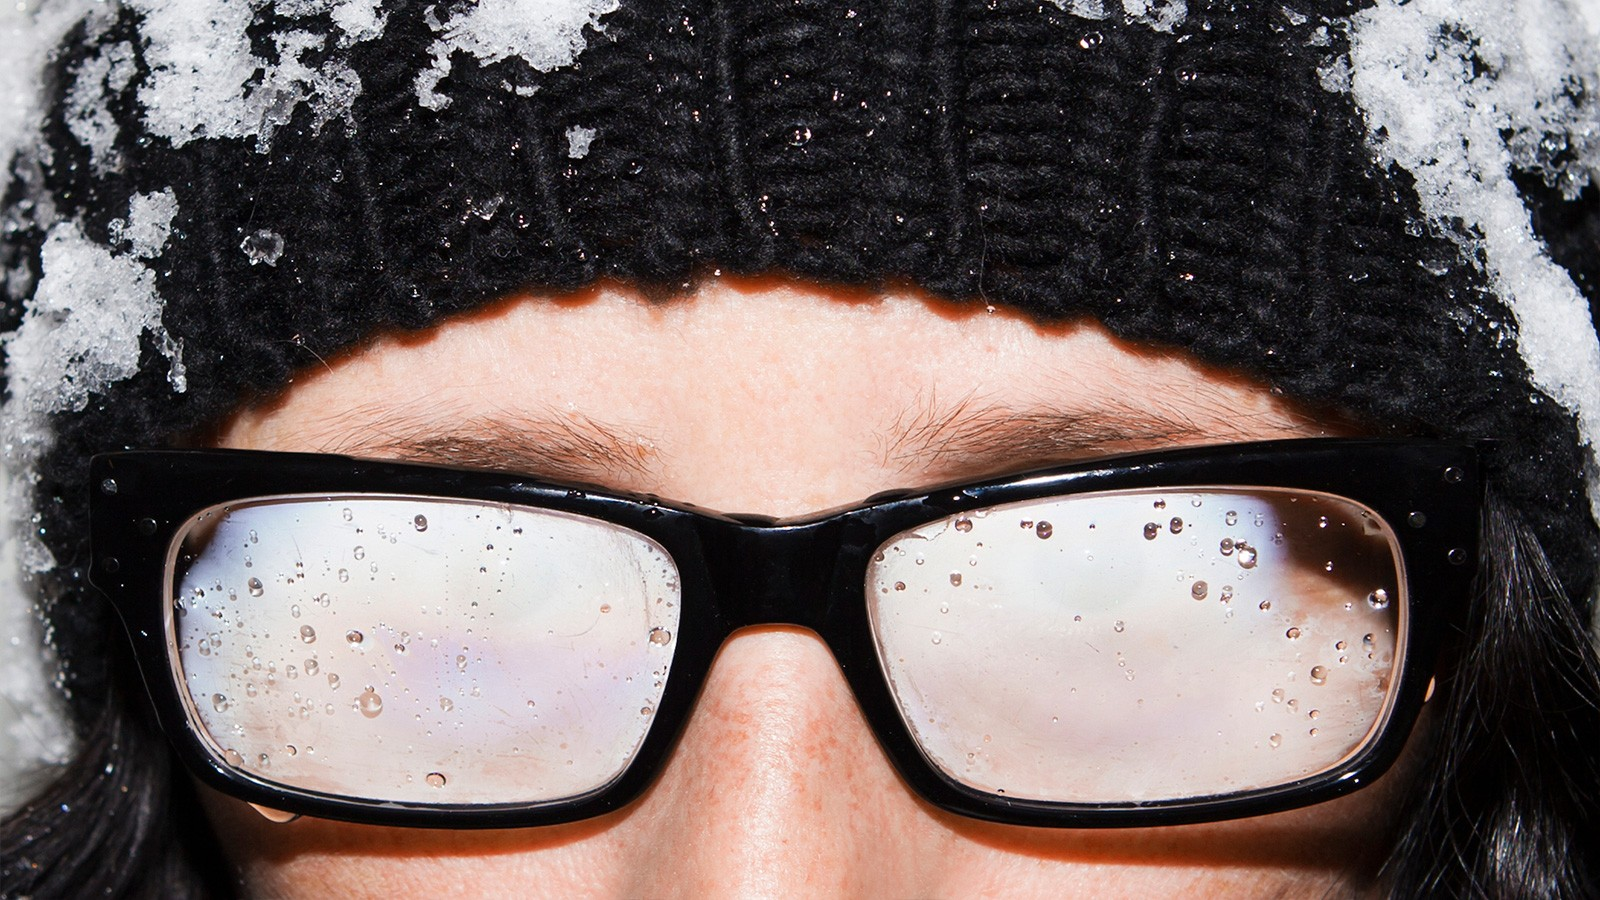 condensation on eyeglasses